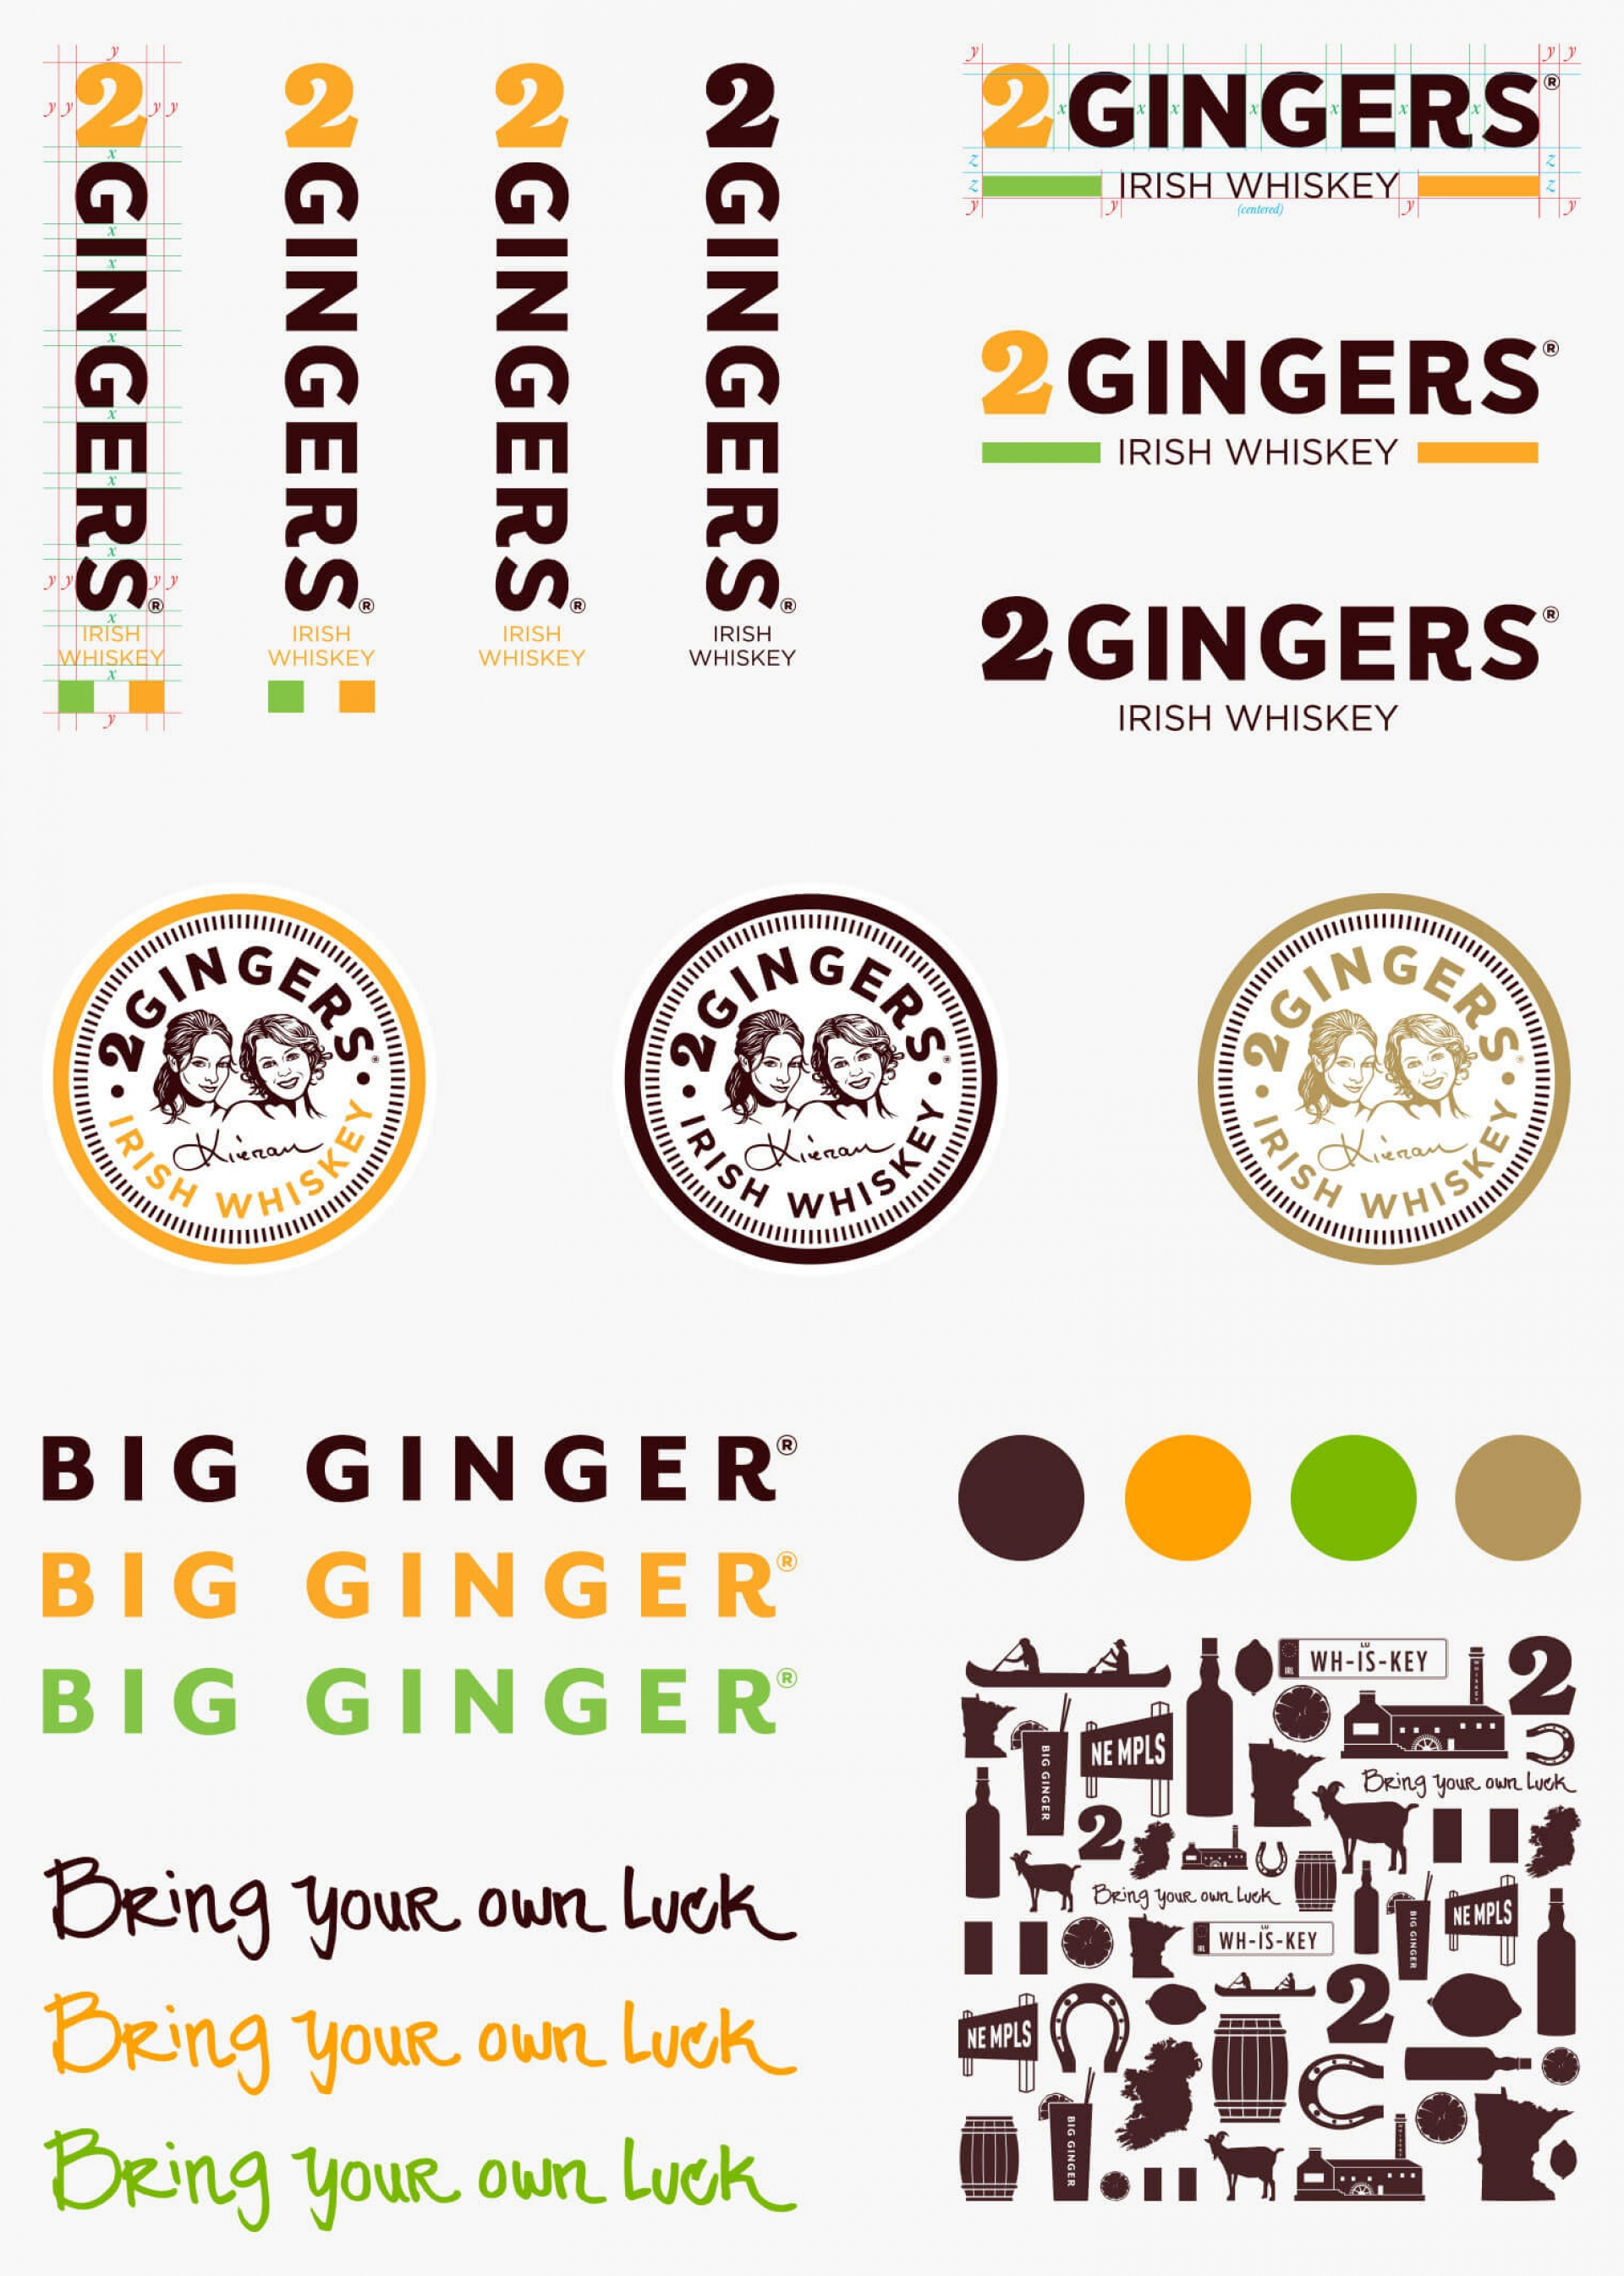 finished graphics of two gingers